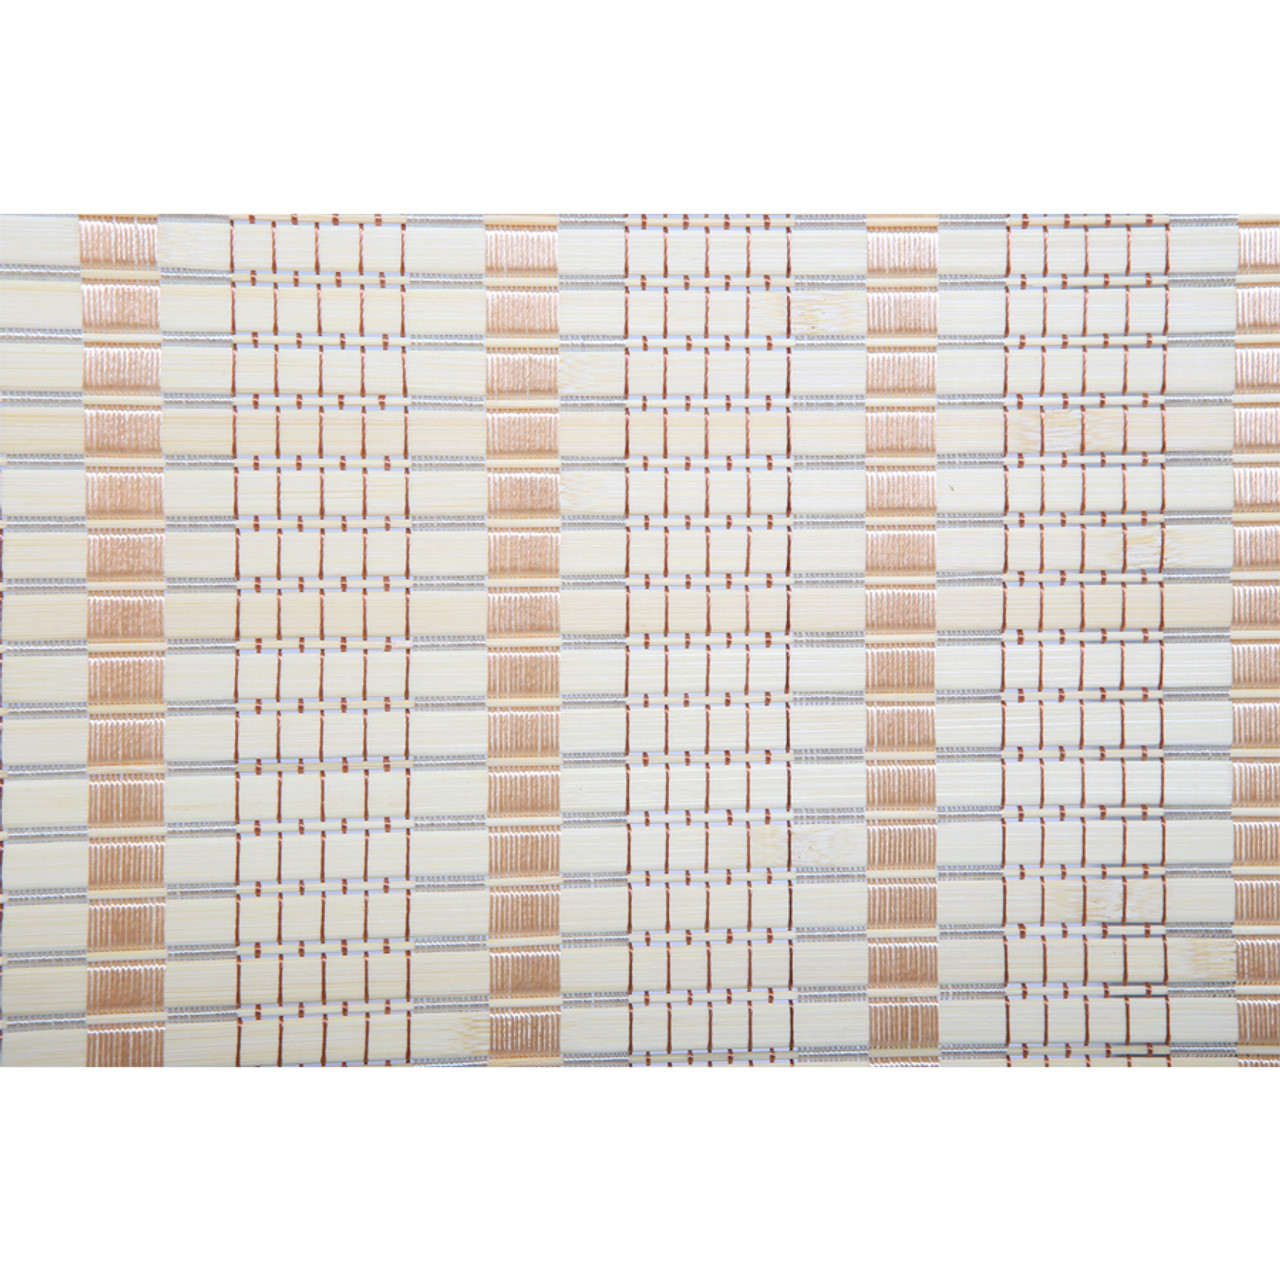 8 Panel Natural, Brown, Or Black Color Wood and Bamboo Weave Room Divider